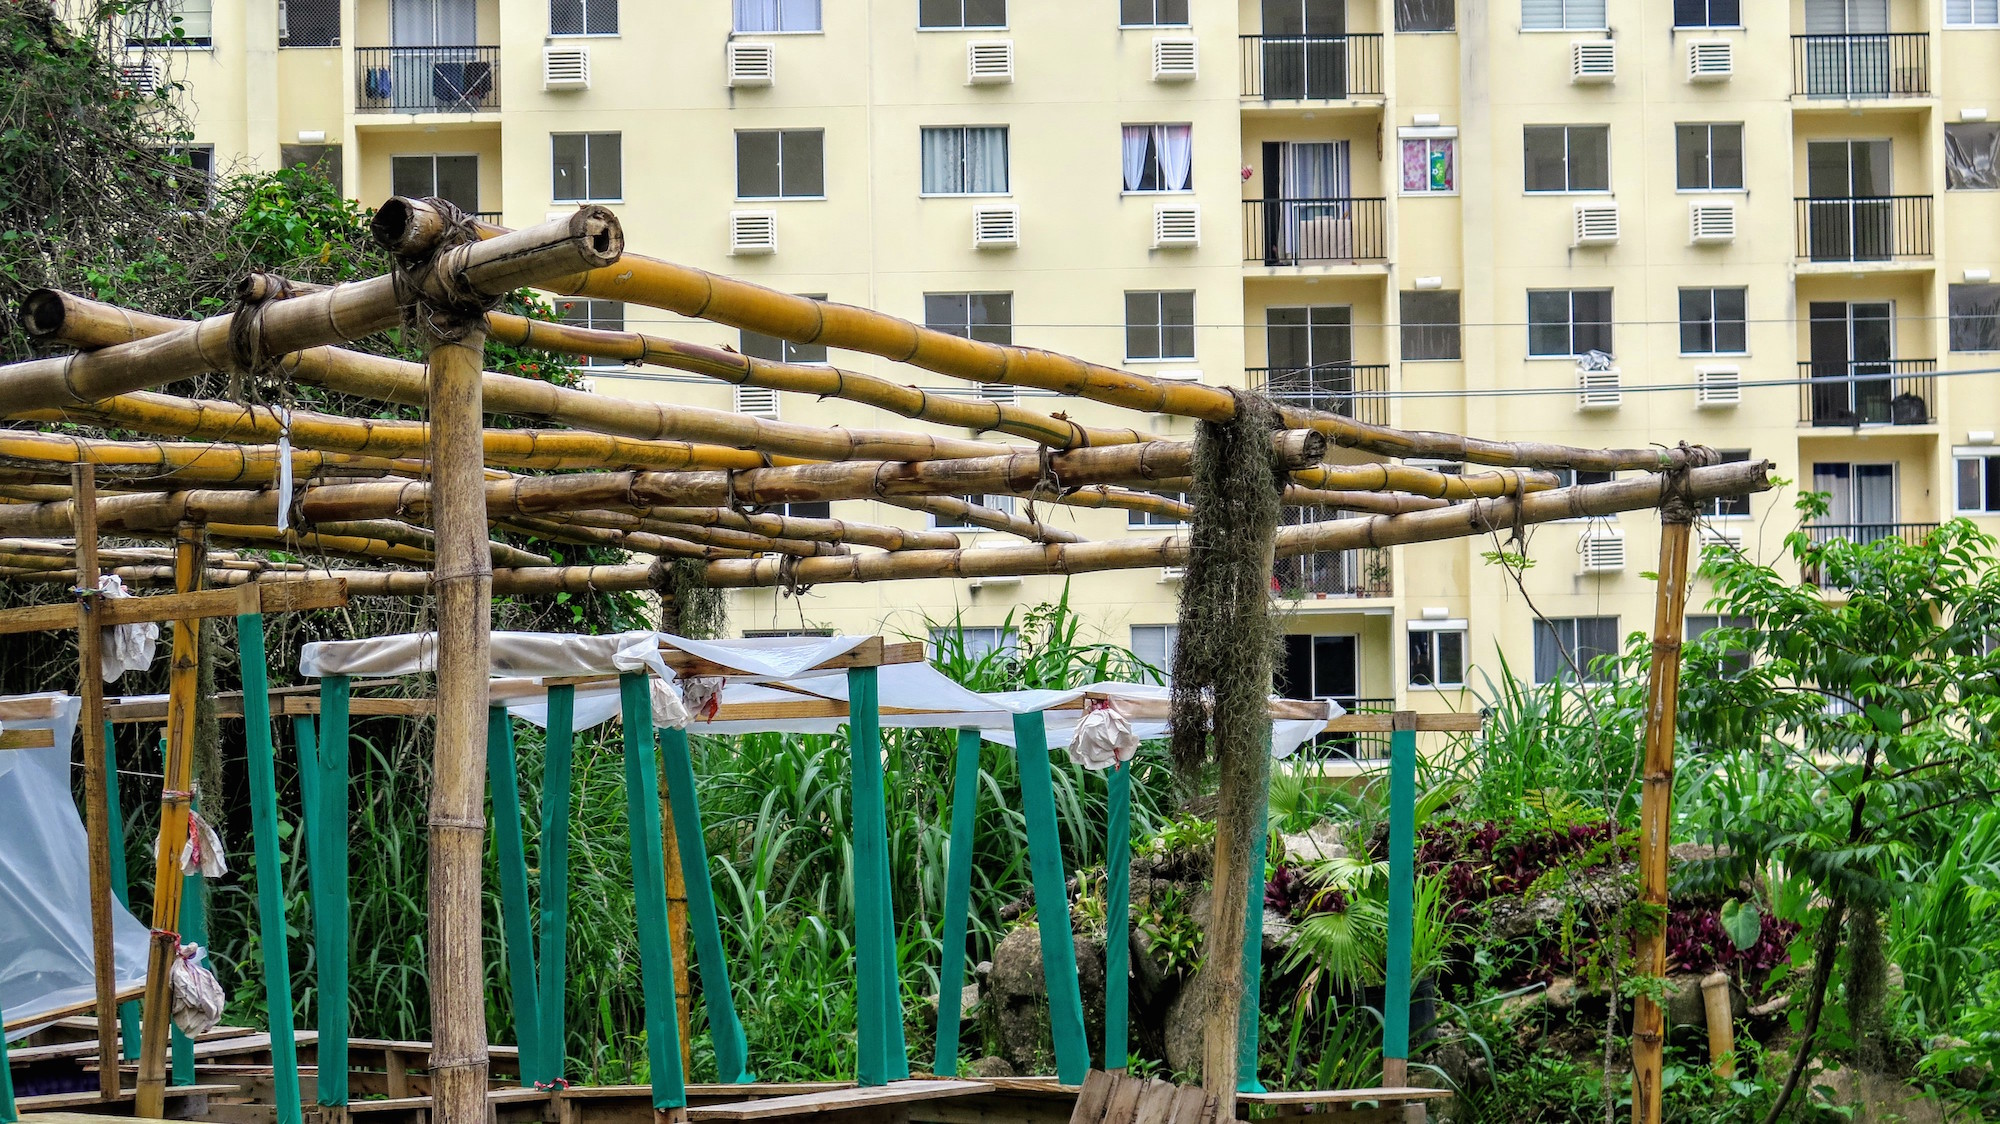 Condominium built on quilombo sacred lands in the background, as compared to bamboo structure utilized by the quilombo